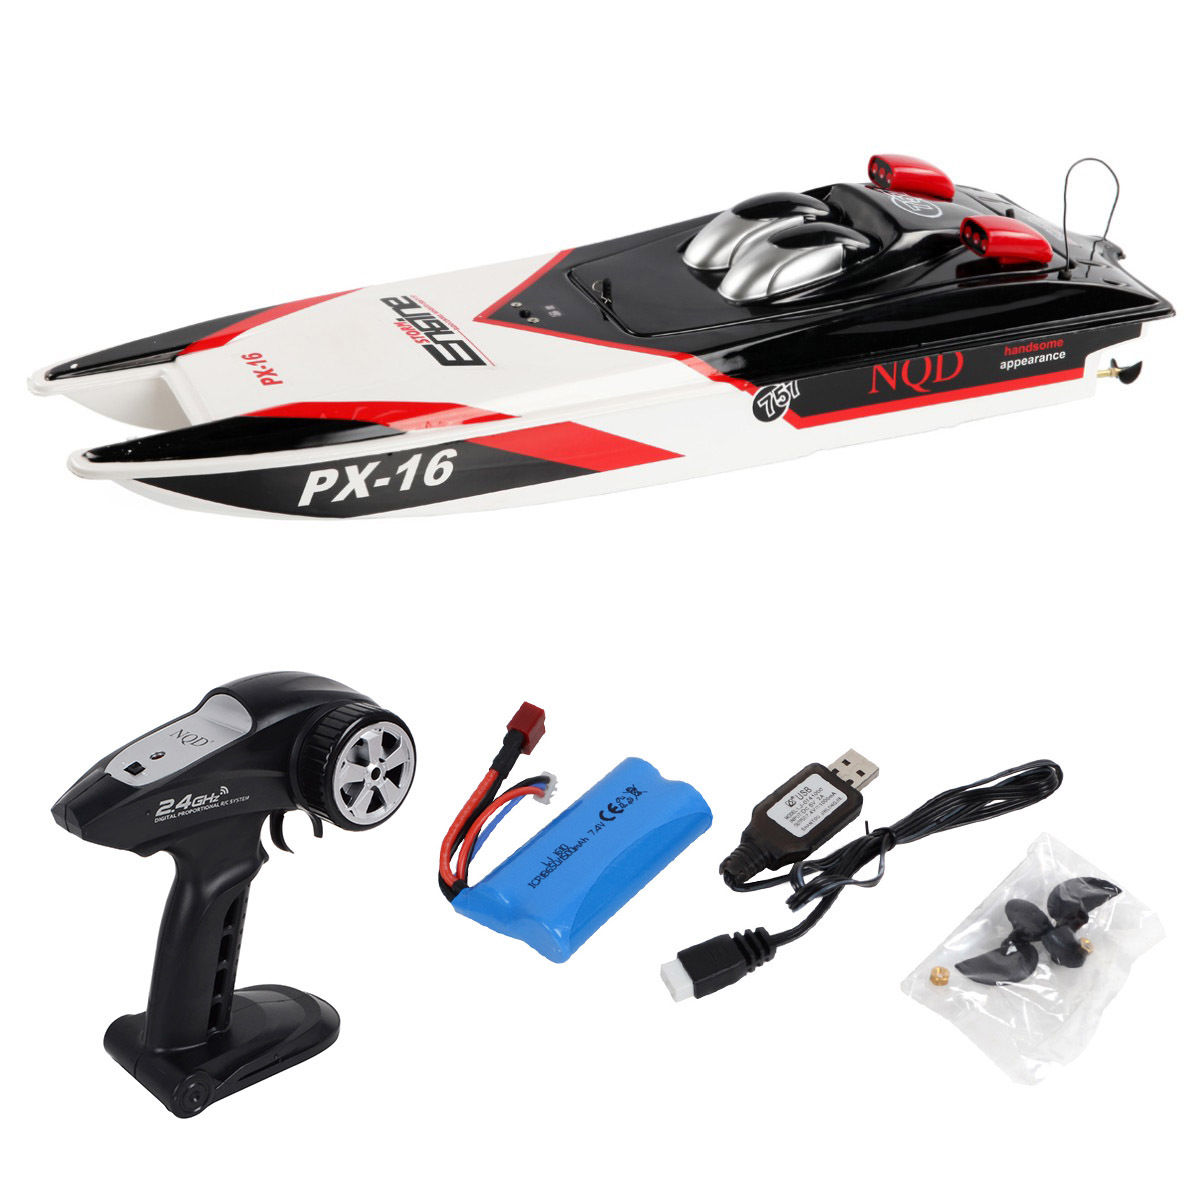 Costway PX-16 1:16 32'' 2.4G RC Speed Boat Storm Engine Radio Remote Control Electric Toy by Costway